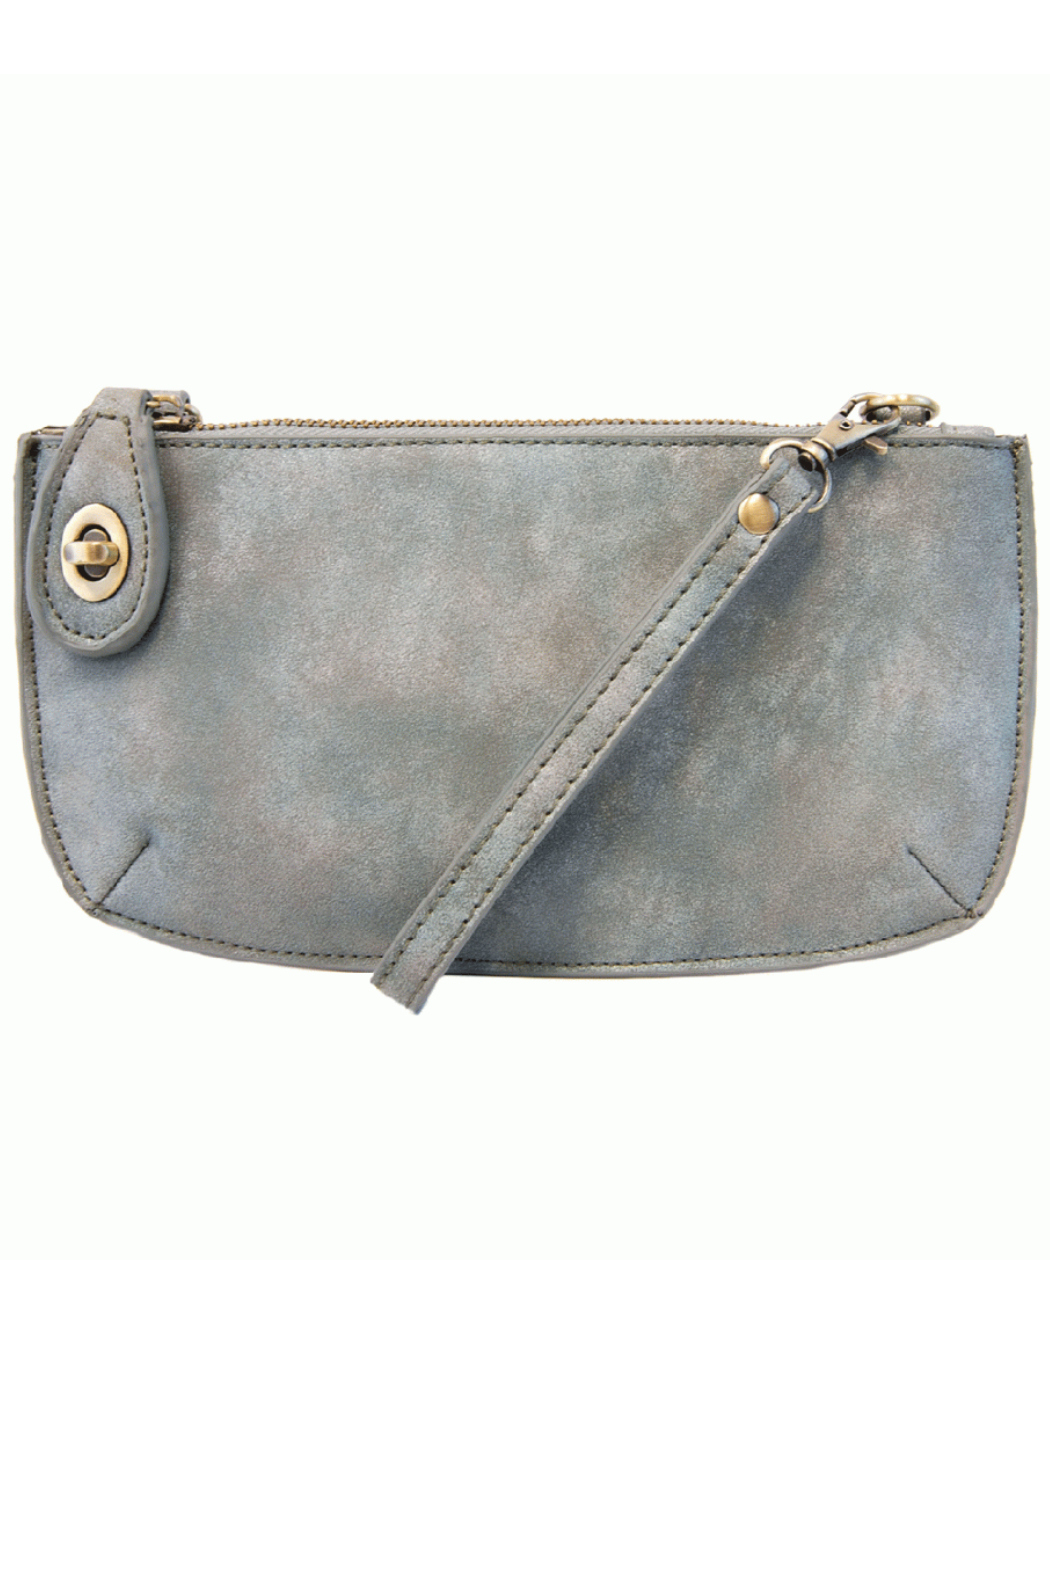 Joy Susan New Lux Crossbody Wristlet Clutch - Front Cropped Image